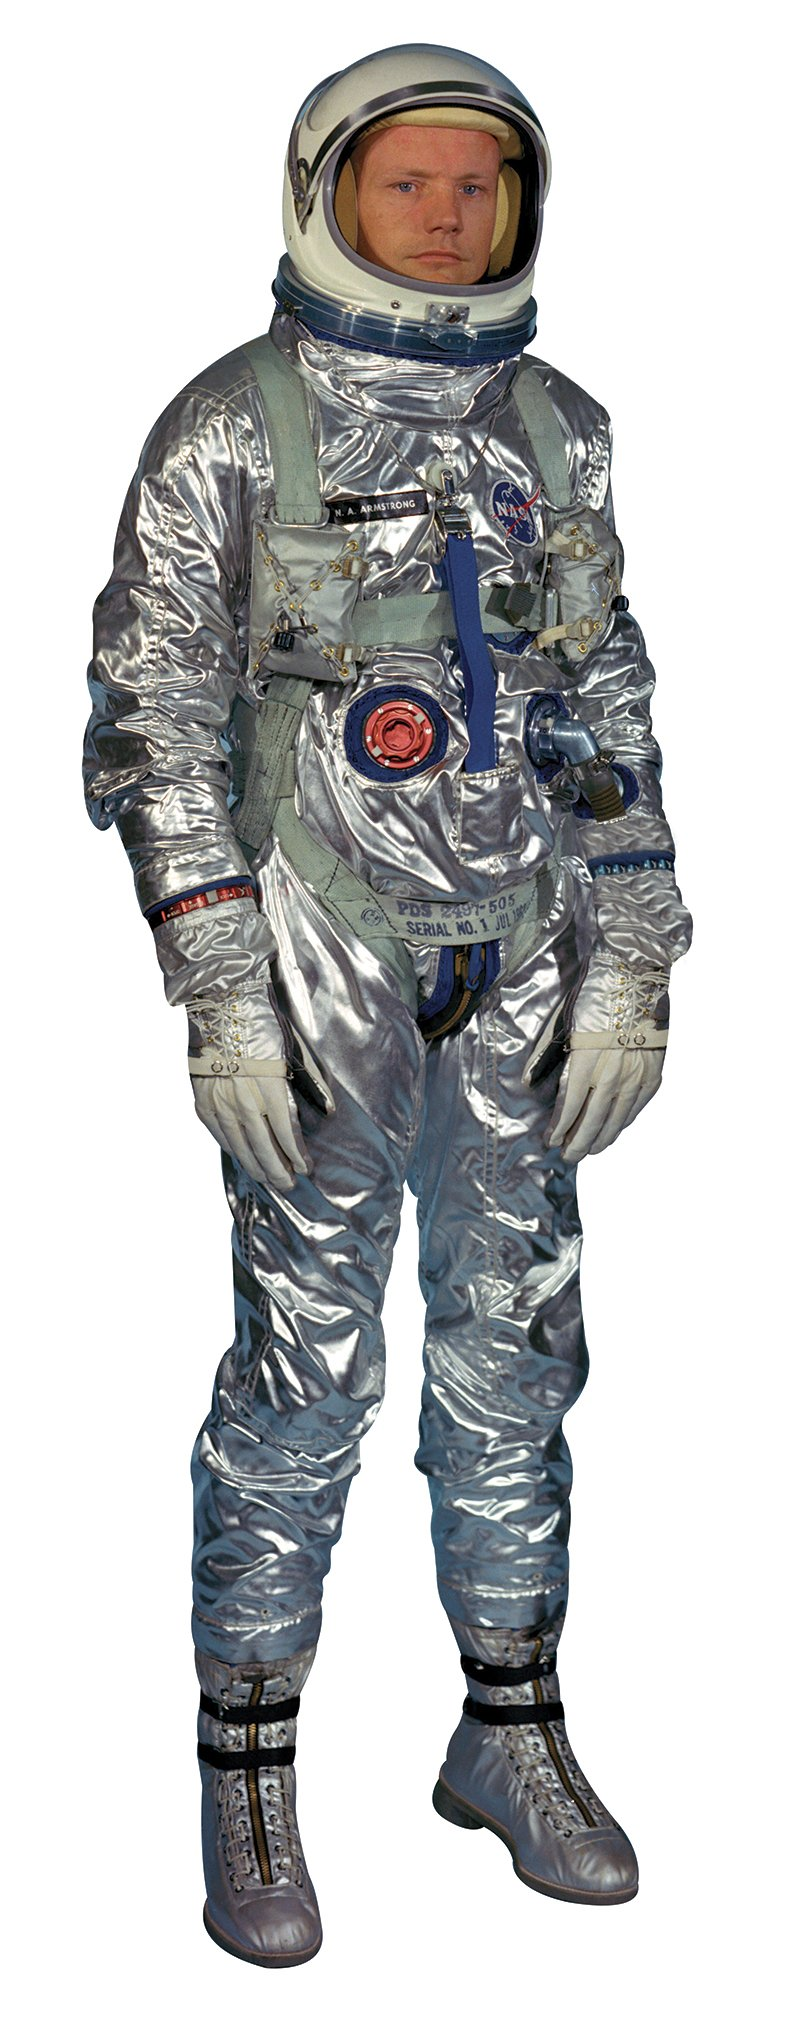 Aahs Engraving Astronaut Neil Armstrong Life Size Cardboard Stand Up, 6 feet